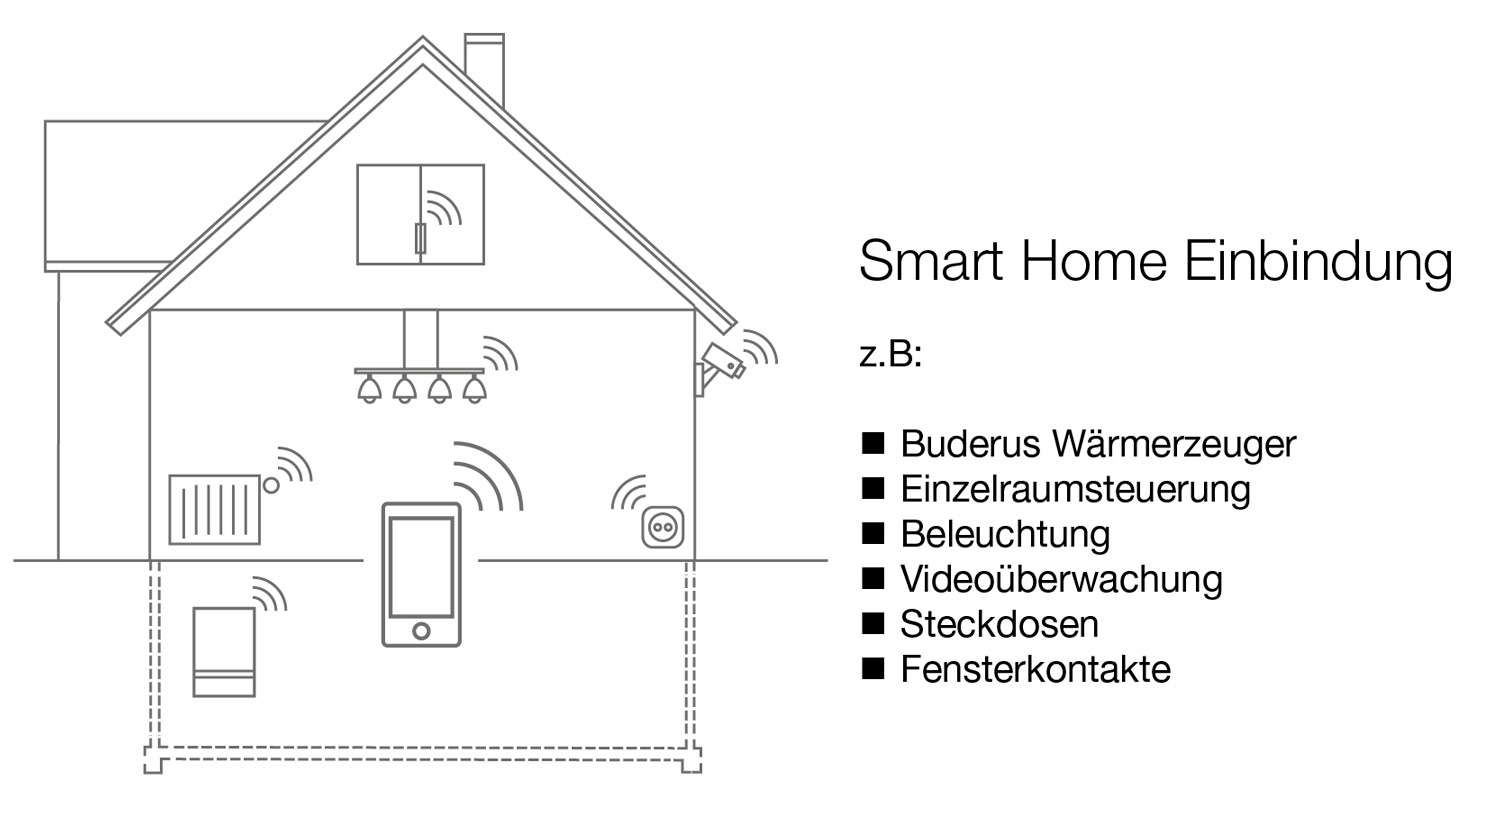 Smart Home Einbindung